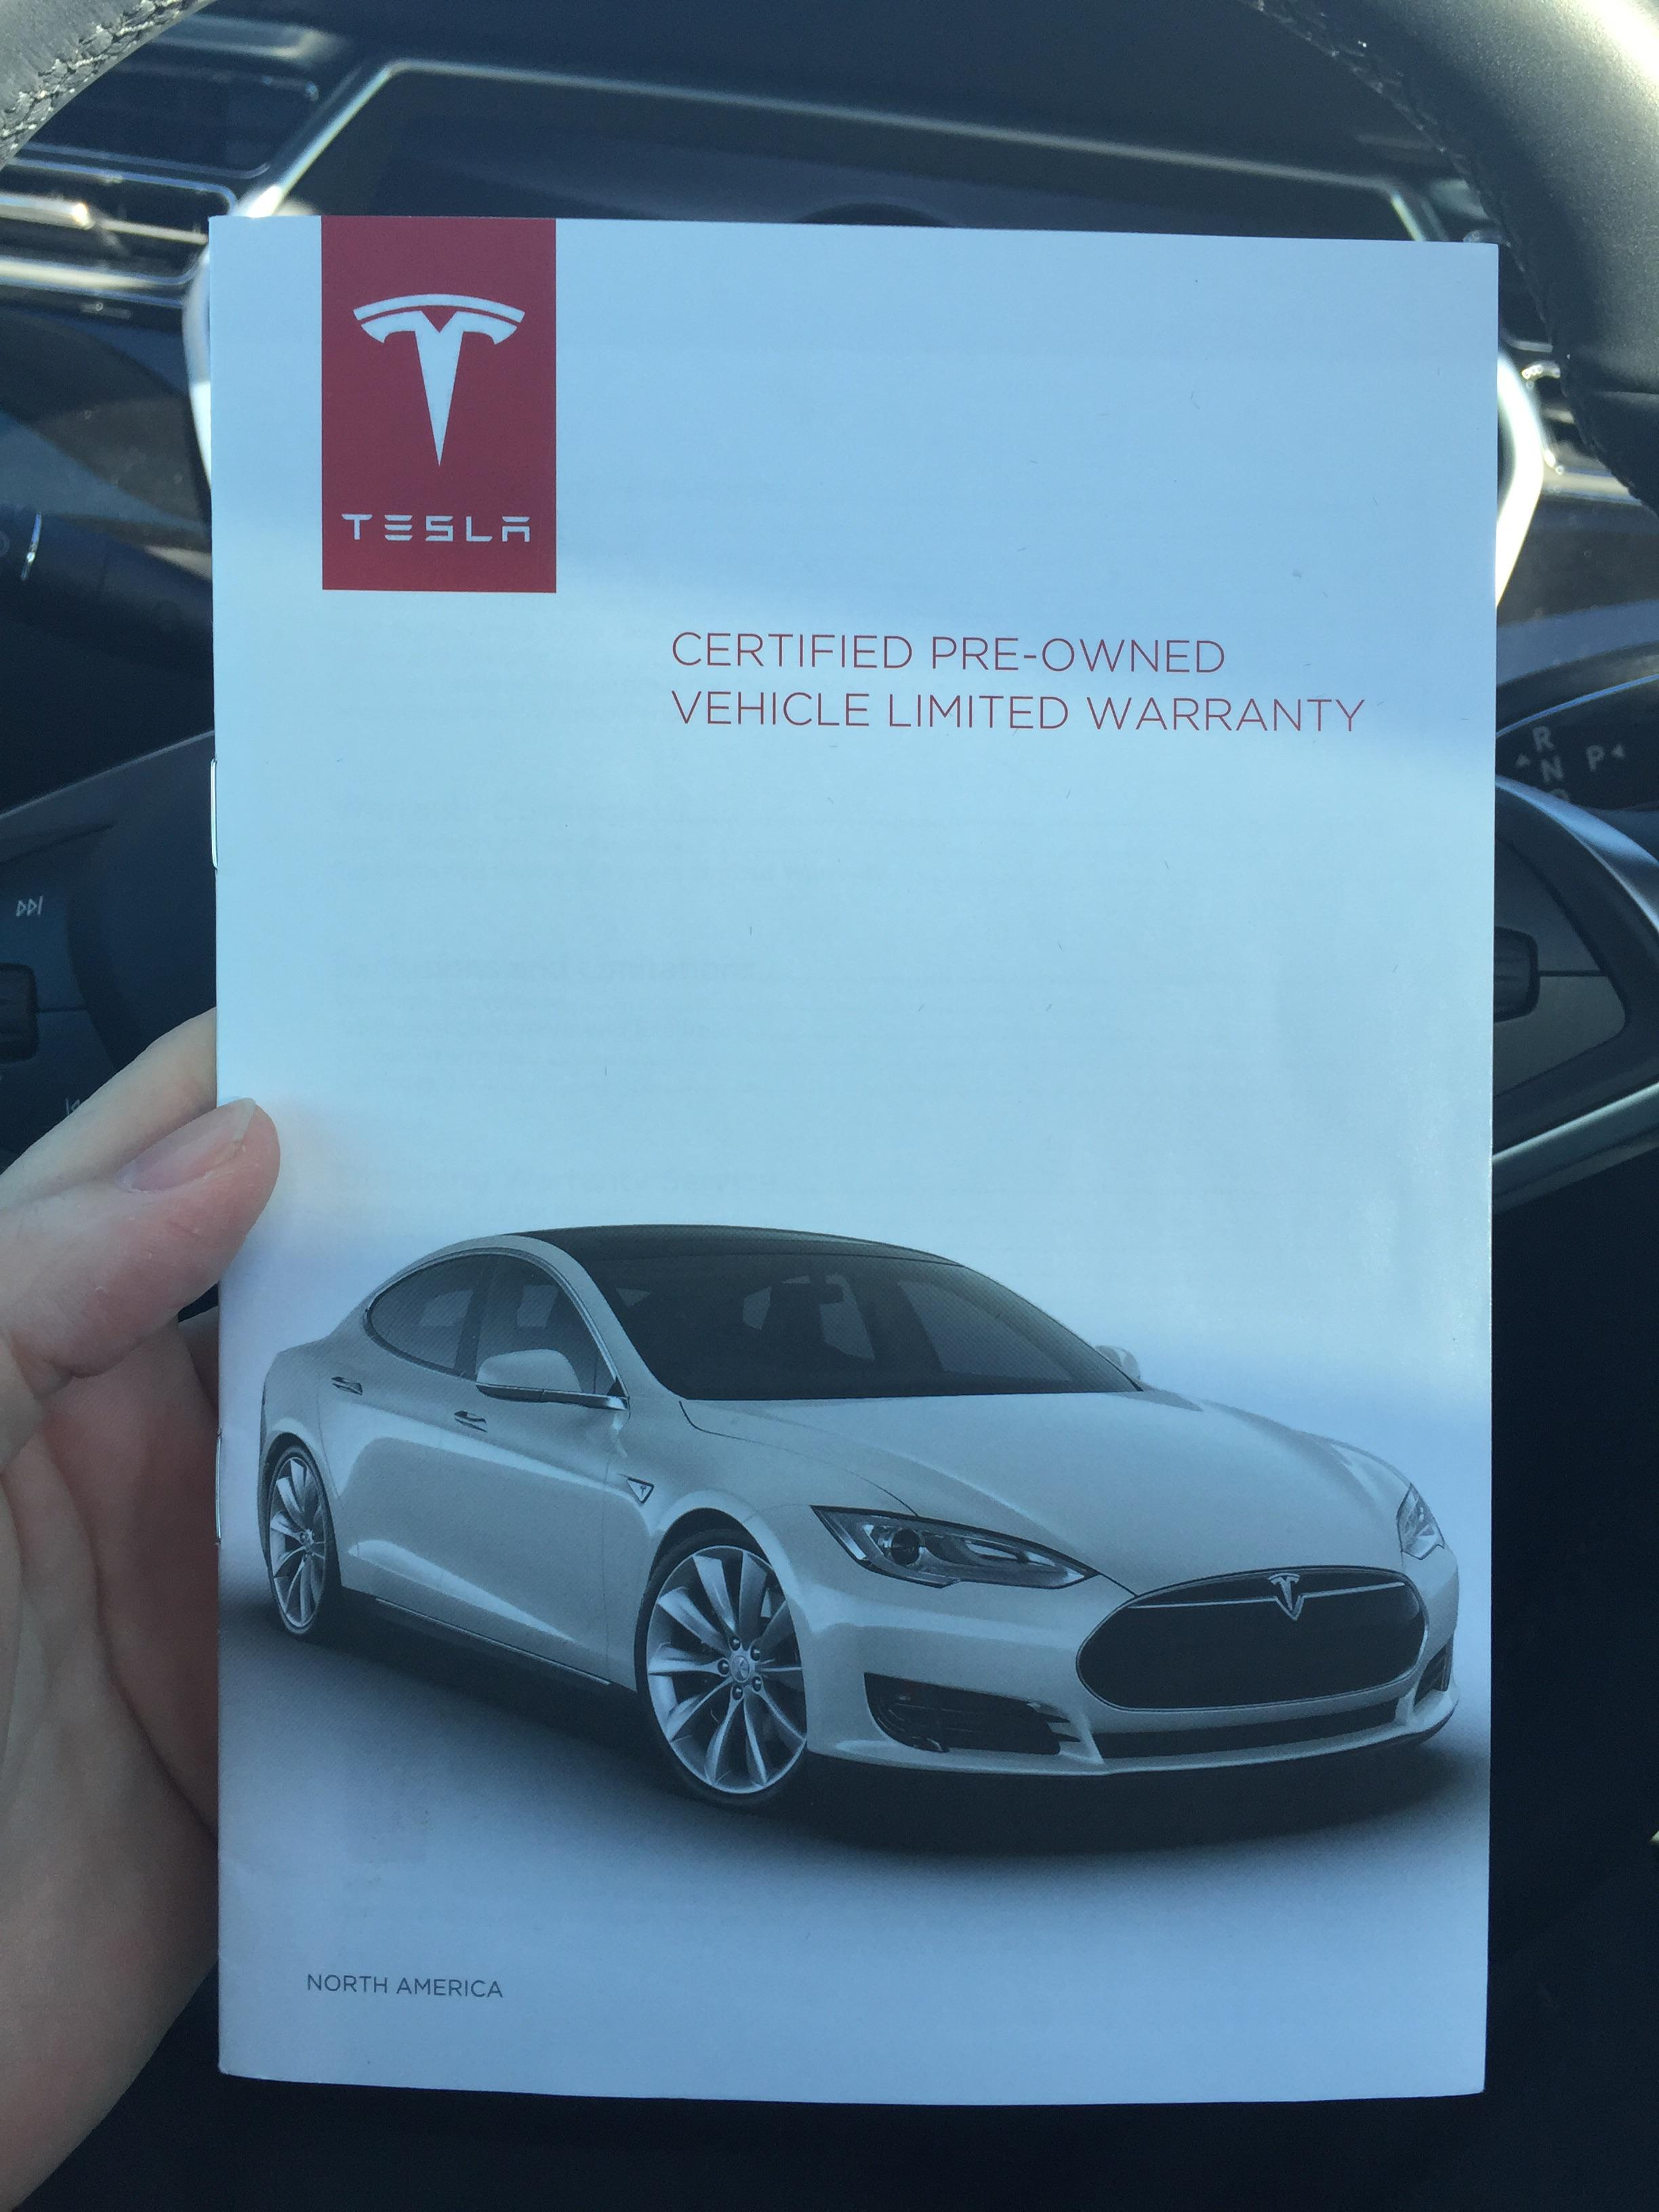 Pre Owned Tesla >> Tesla Model S Now Has A Certified Pre Owned Program The Green